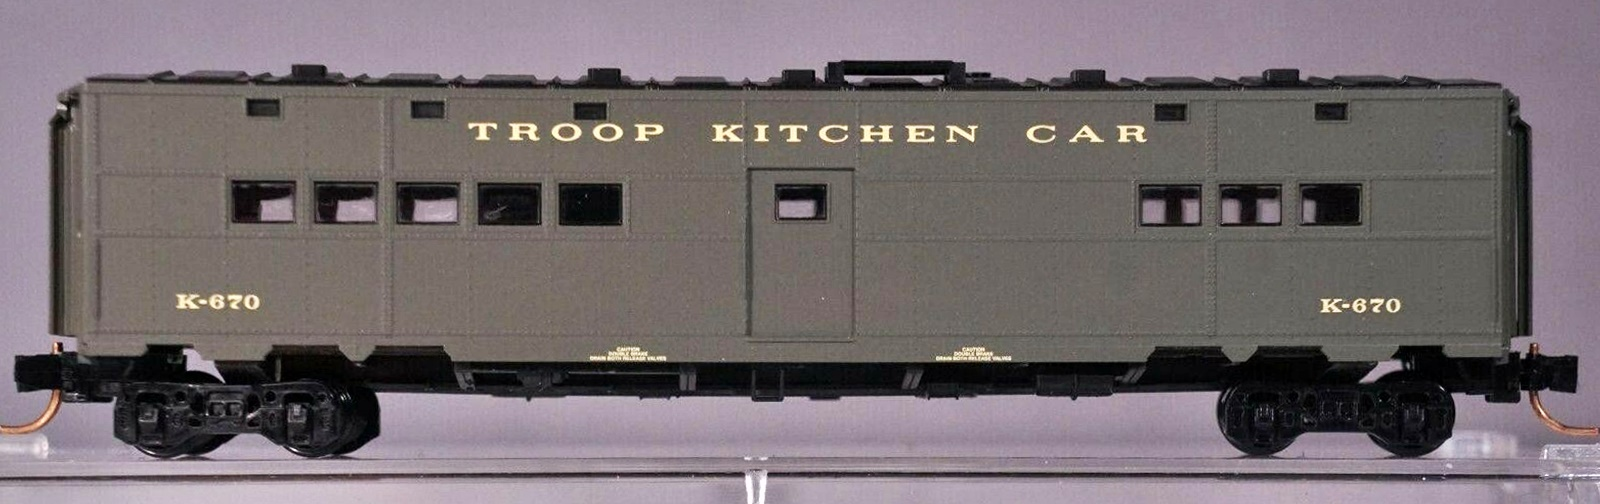 N Scale - Micro-Trains - 118 50 010 - Passenger Car, Troop Transport - United States Army - K-670